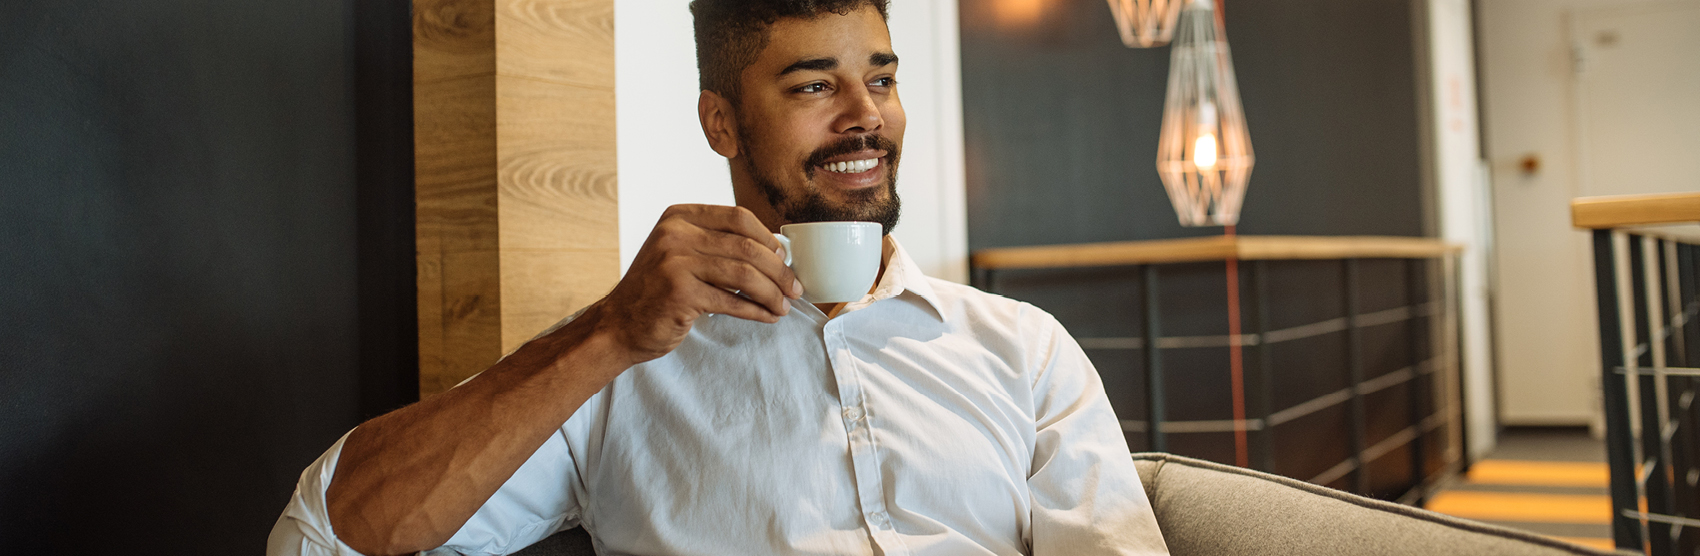 Young man drinking a cup of coffee at home